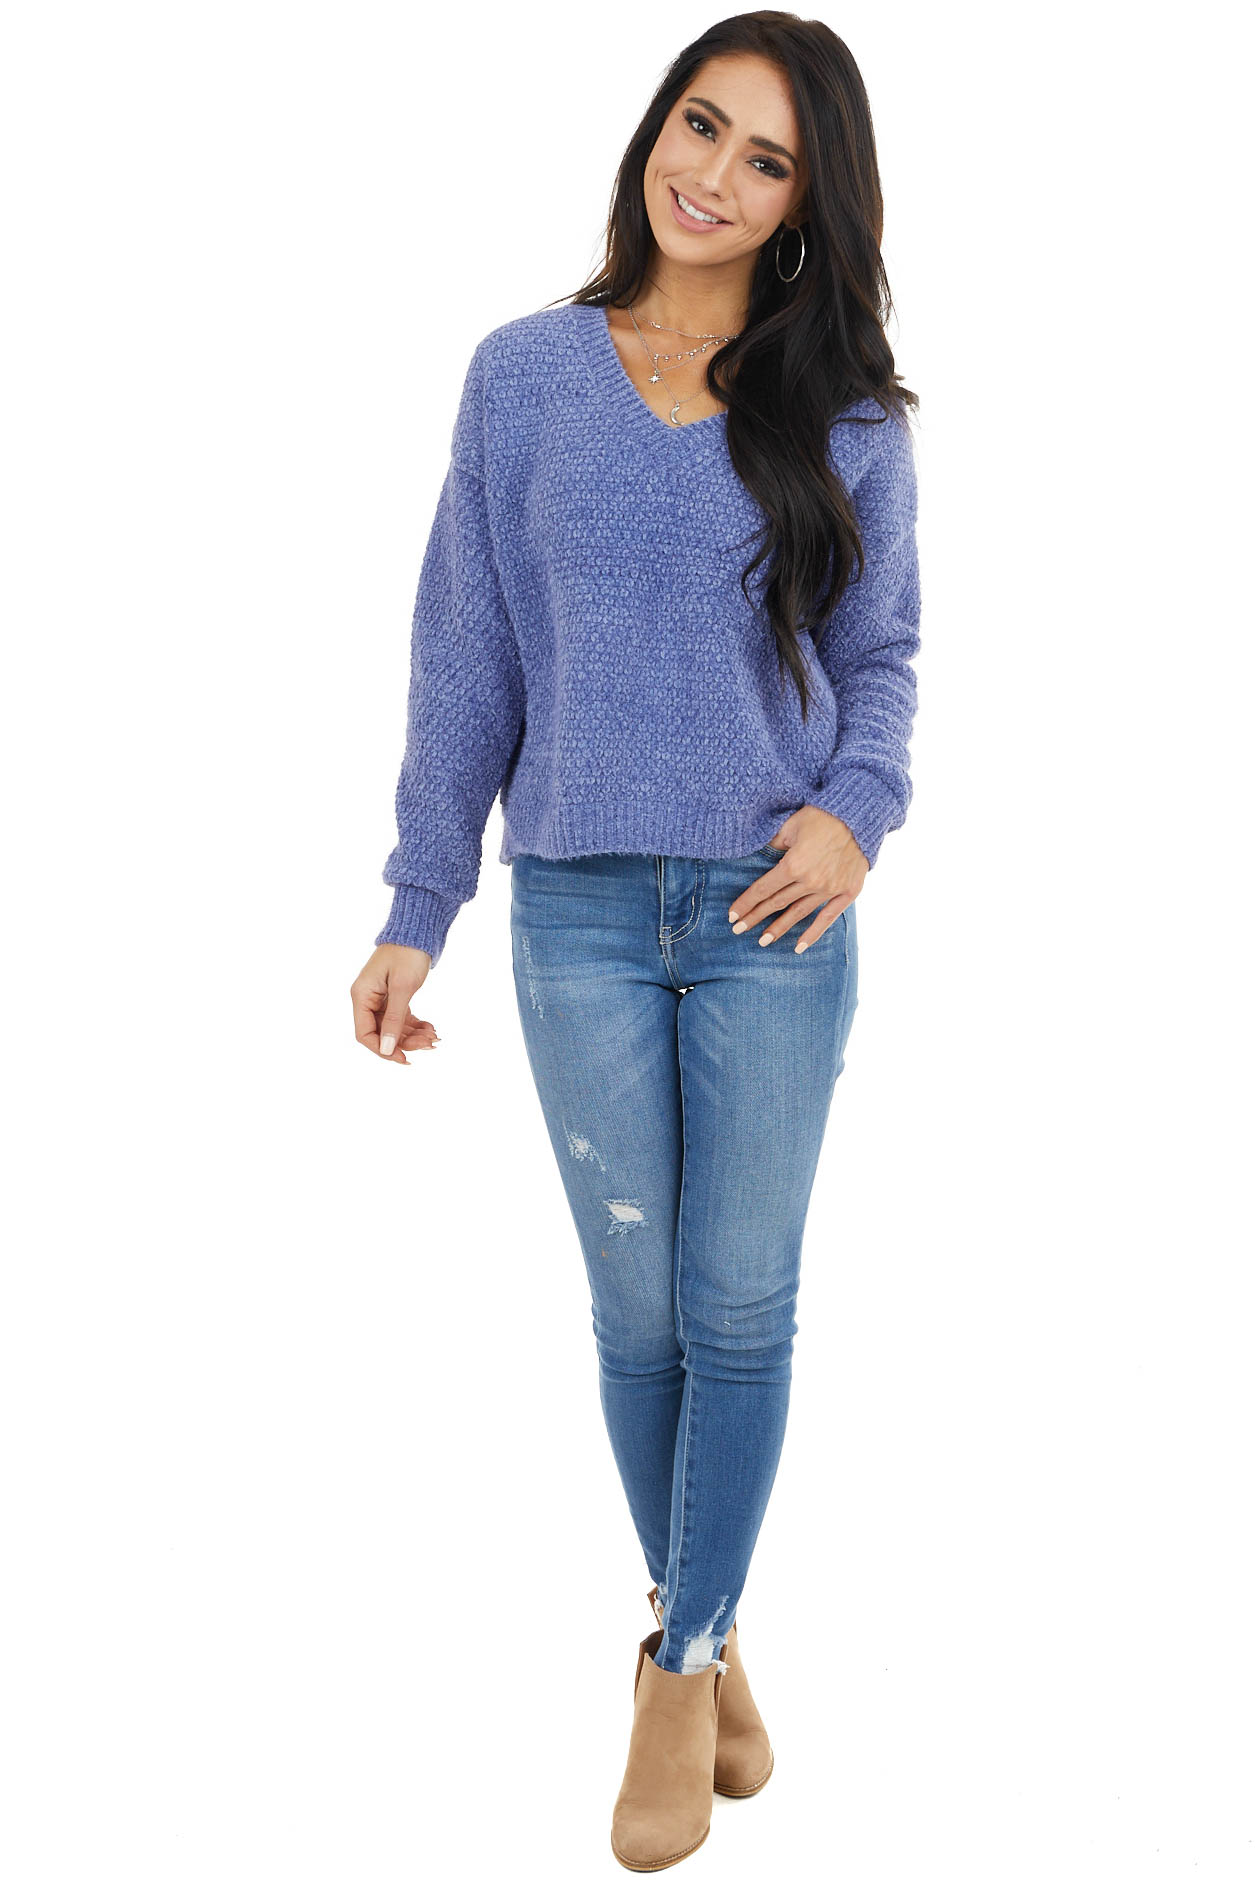 Dusty Blue Two Tone Slightly Cropped Sweater with V Neck